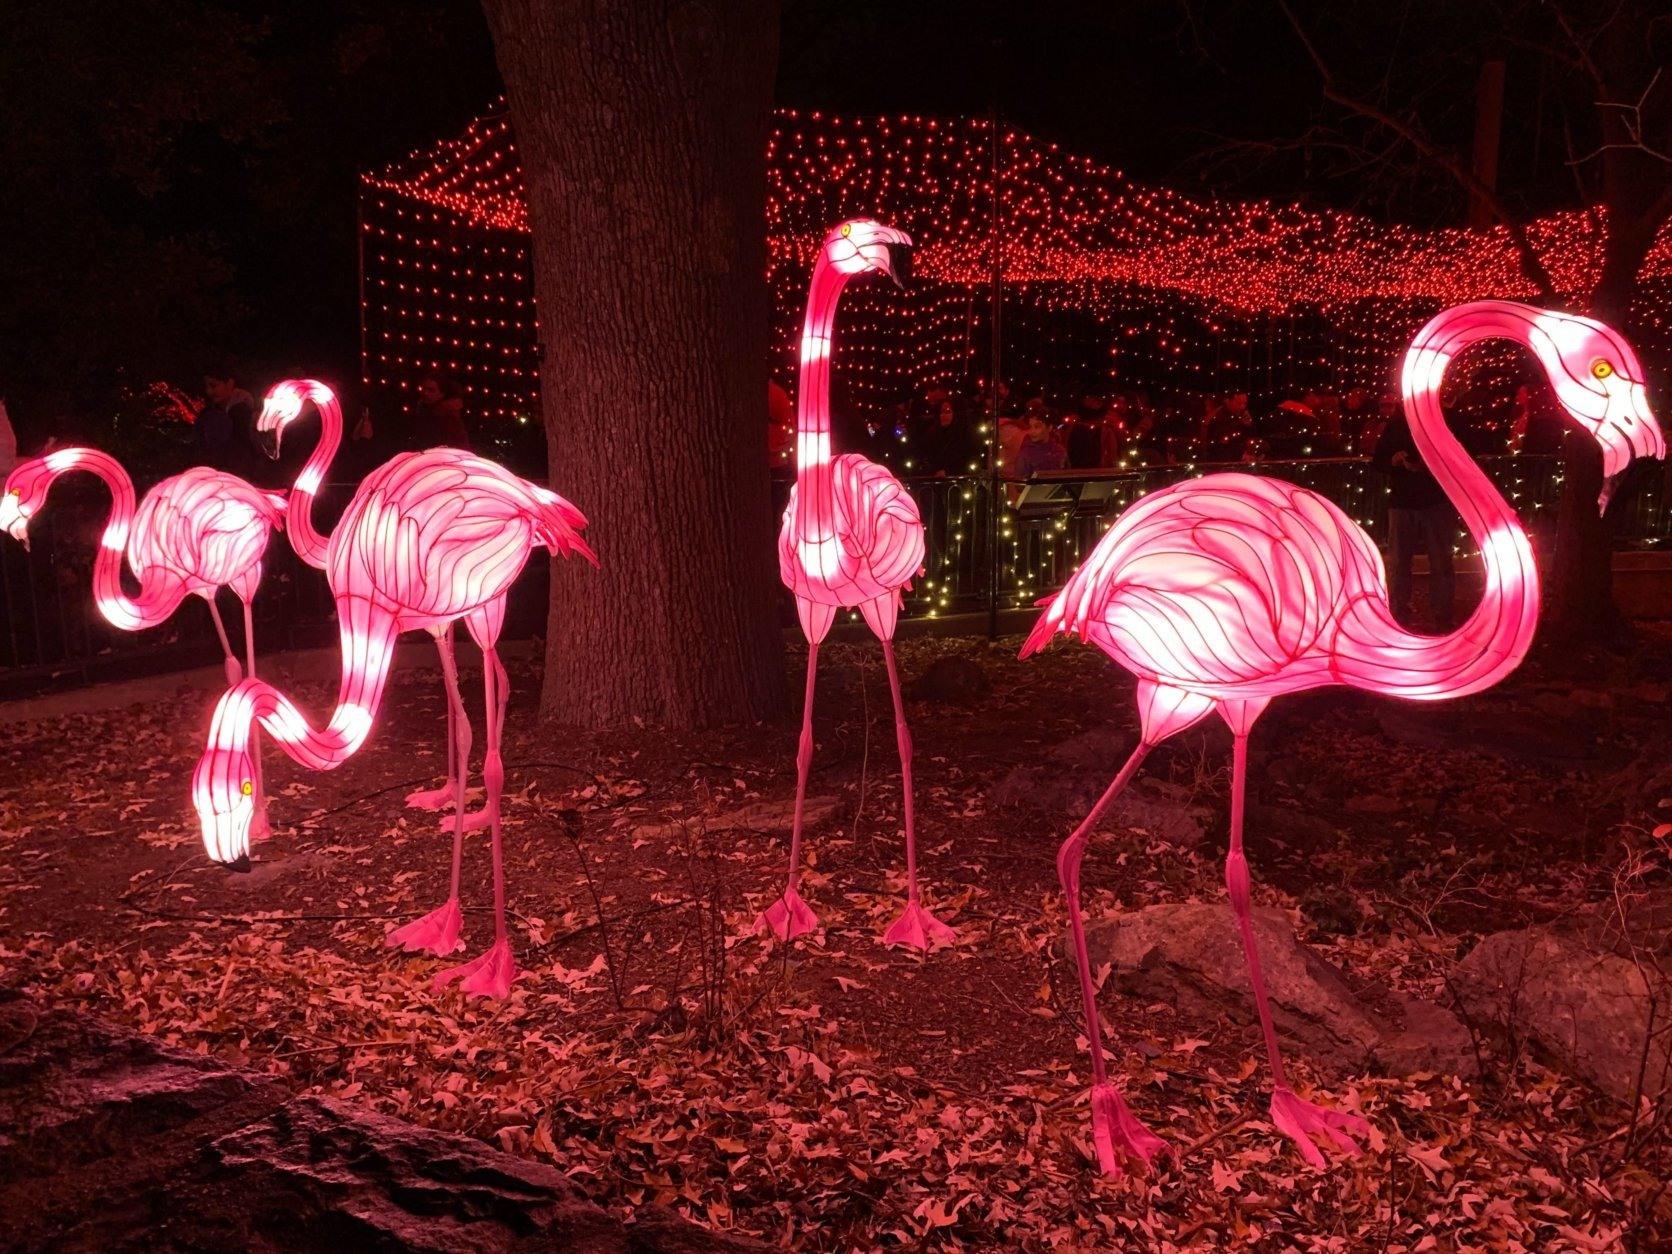 ZooLights returns to the National Zoo from Nov. 29 until Jan. 1.